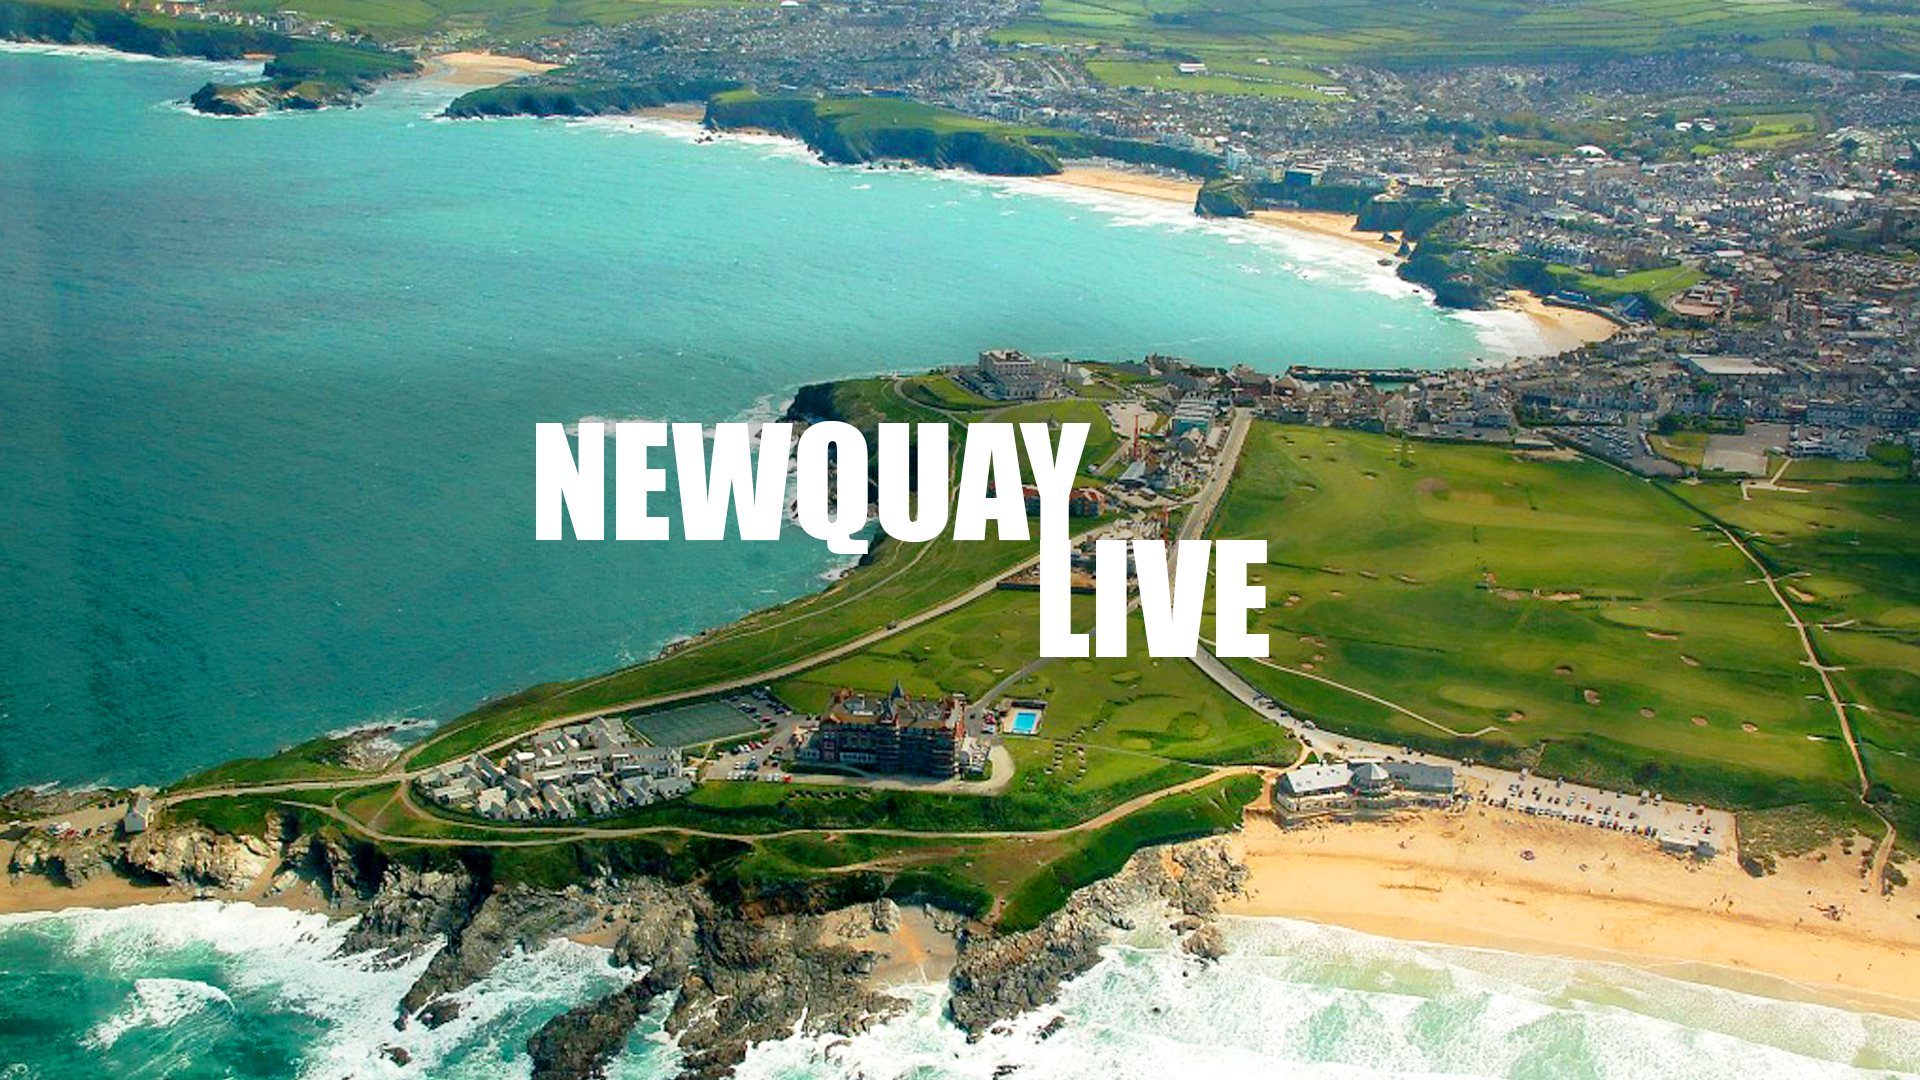 Life inside the huge new town being built by Prince Charles on the edge of Newquay